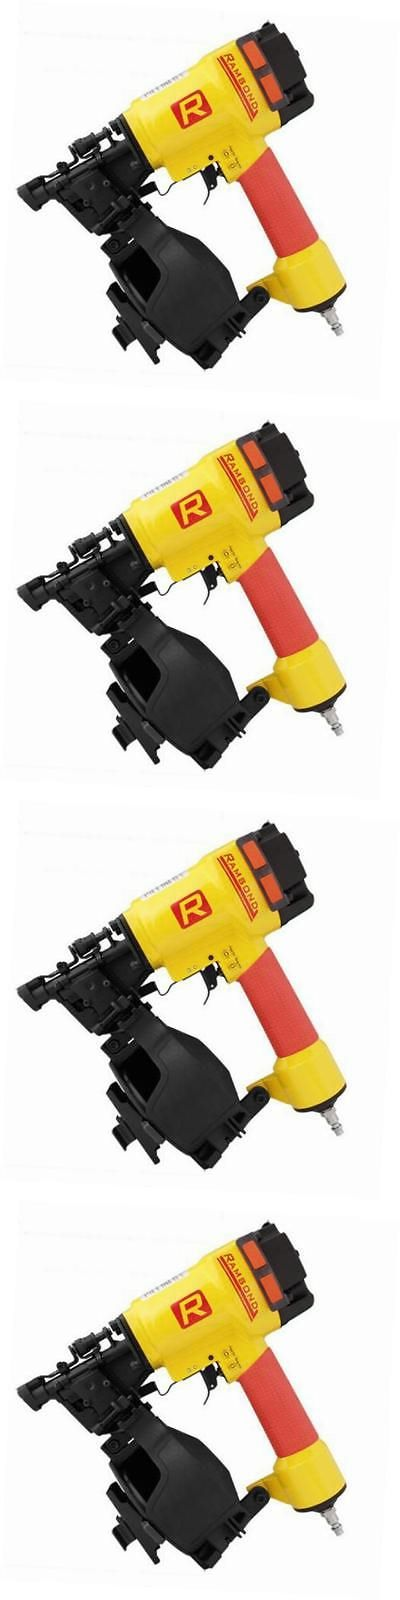 Roofing Guns 42243: Crn-45 7 8-Inch To 1-3 4-Inch Nails Coil Air Roofing Nailer -> BUY IT NOW ONLY: $172.2 on eBay!